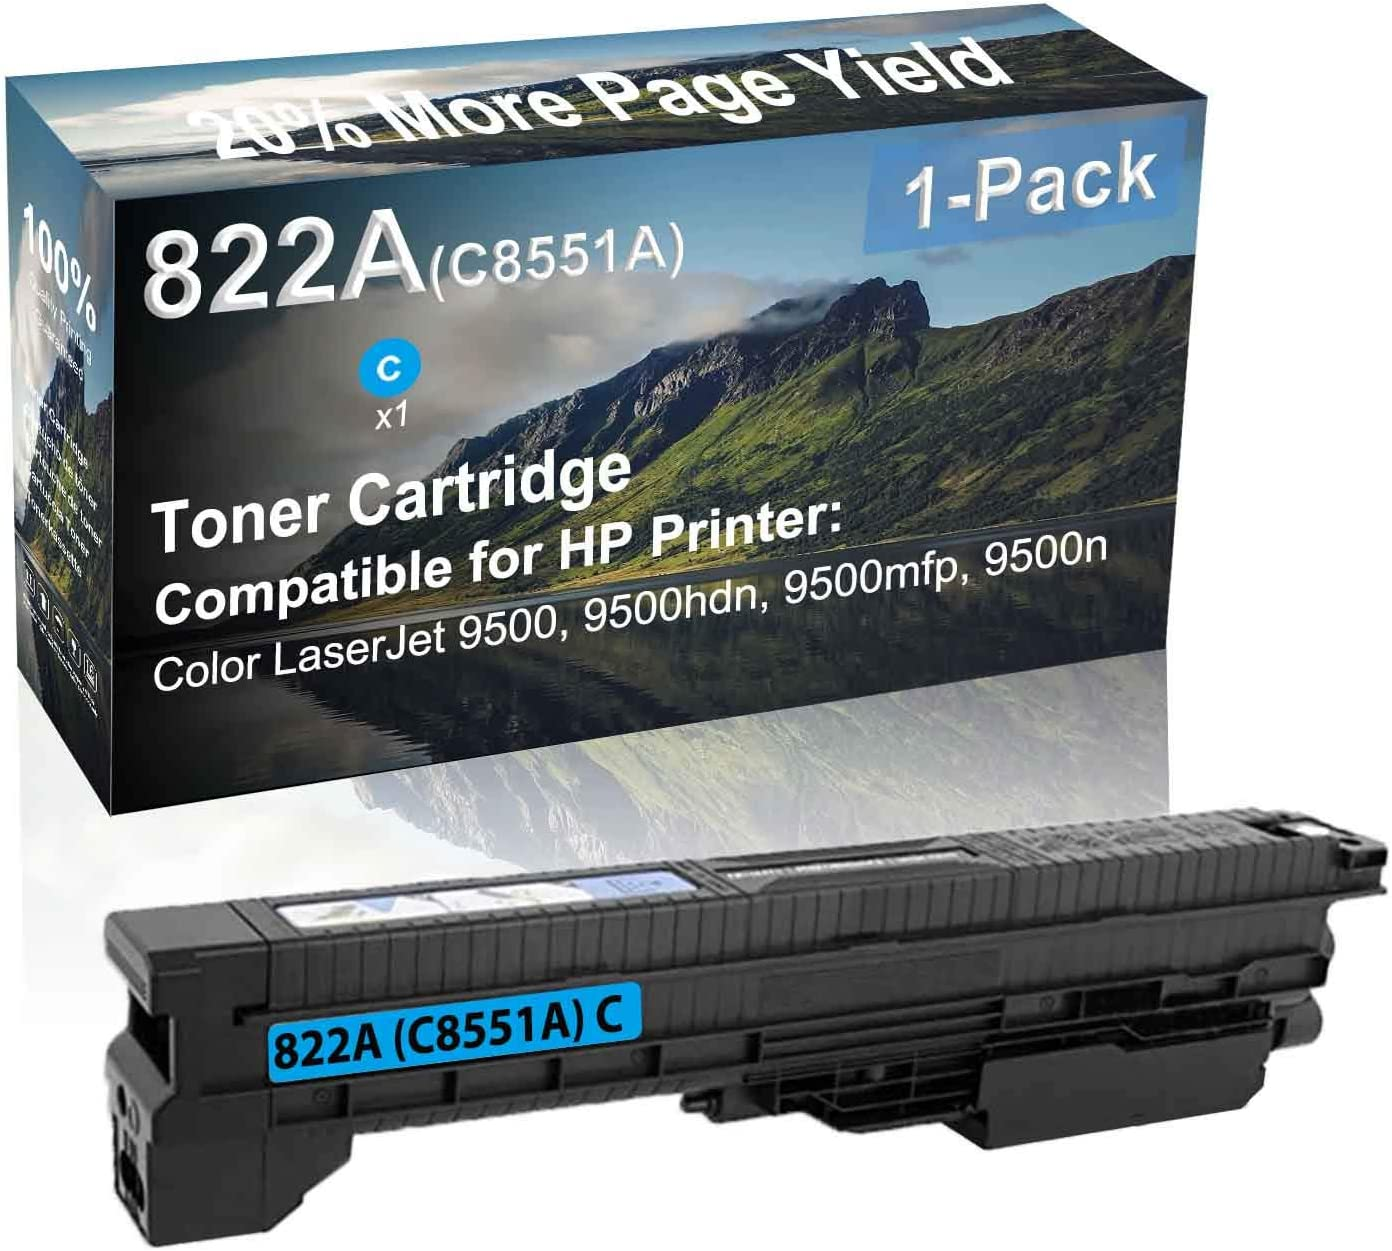 1-Pack (Cyan) Compatible High Yield 822A (C8551A) Laser Printer Toner Cartridge use for HP 9500, 9500hdn, 9500mfp, 9500n Printer